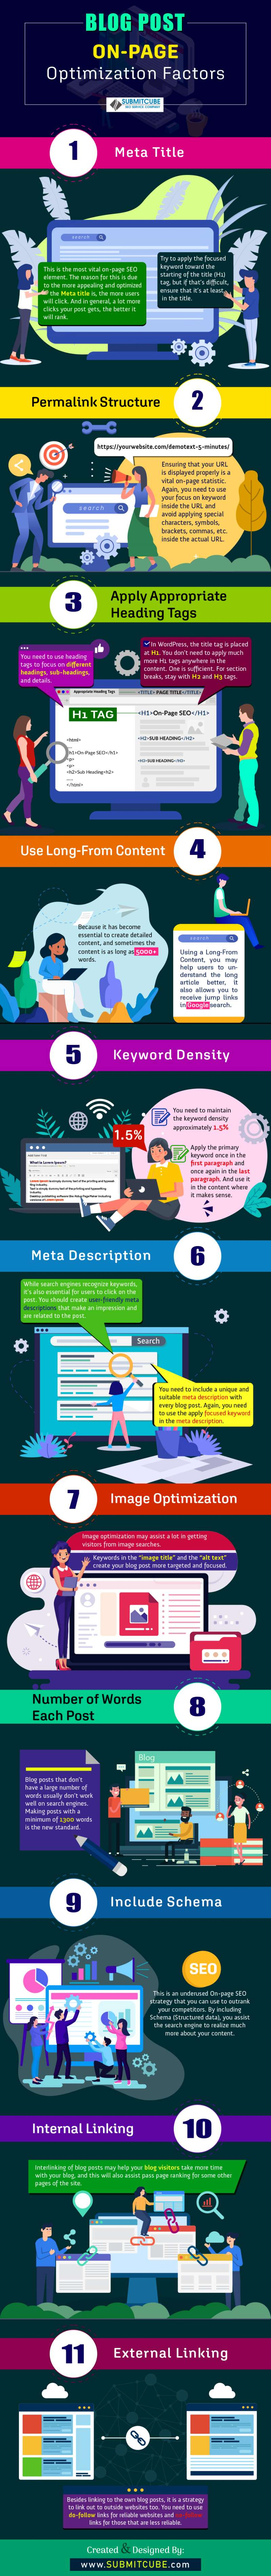 An infographic on Blog Post On-Page SEO By Submitcube